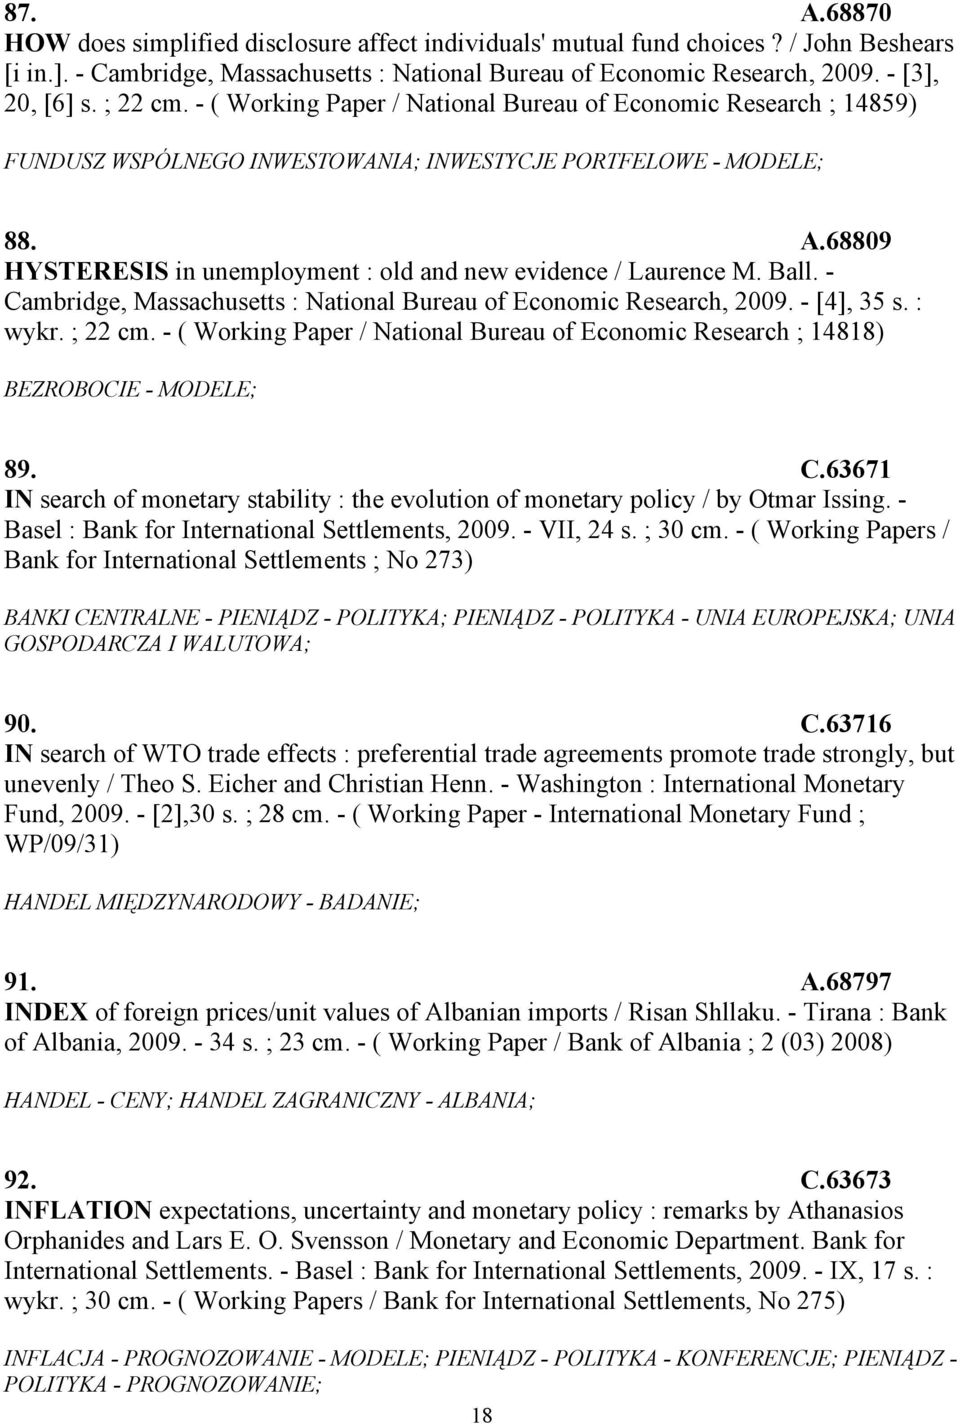 68809 HYSTERESIS in unemployment : old and new evidence / Laurence M. Ball. - Cambridge, Massachusetts : National Bureau of Economic Research, 2009. - [4], 35 s. : wykr. ; 22 cm.